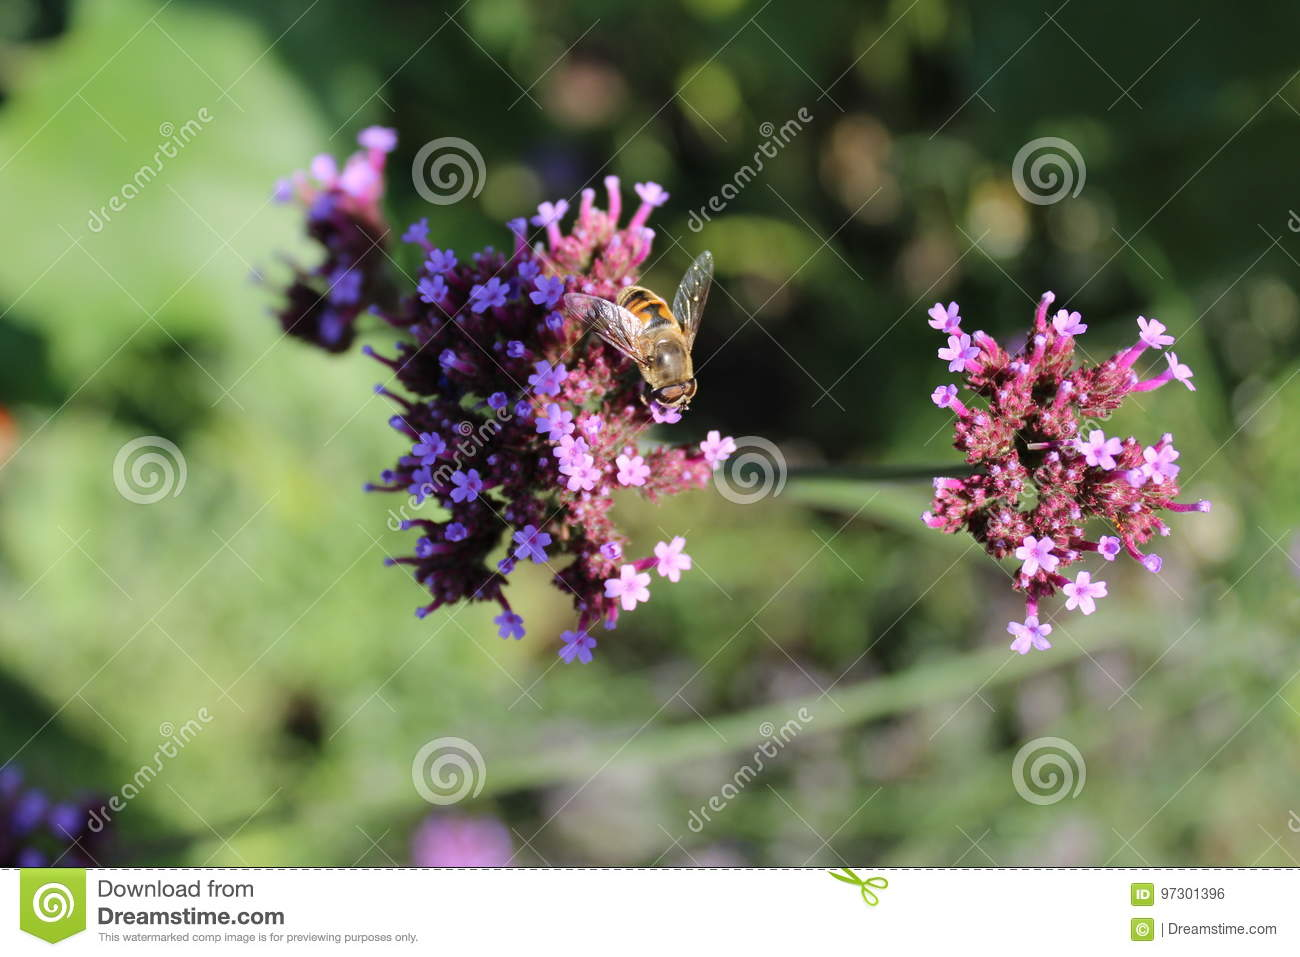 Honey Bee On Verbena Officinalis Stock Photo - Image of